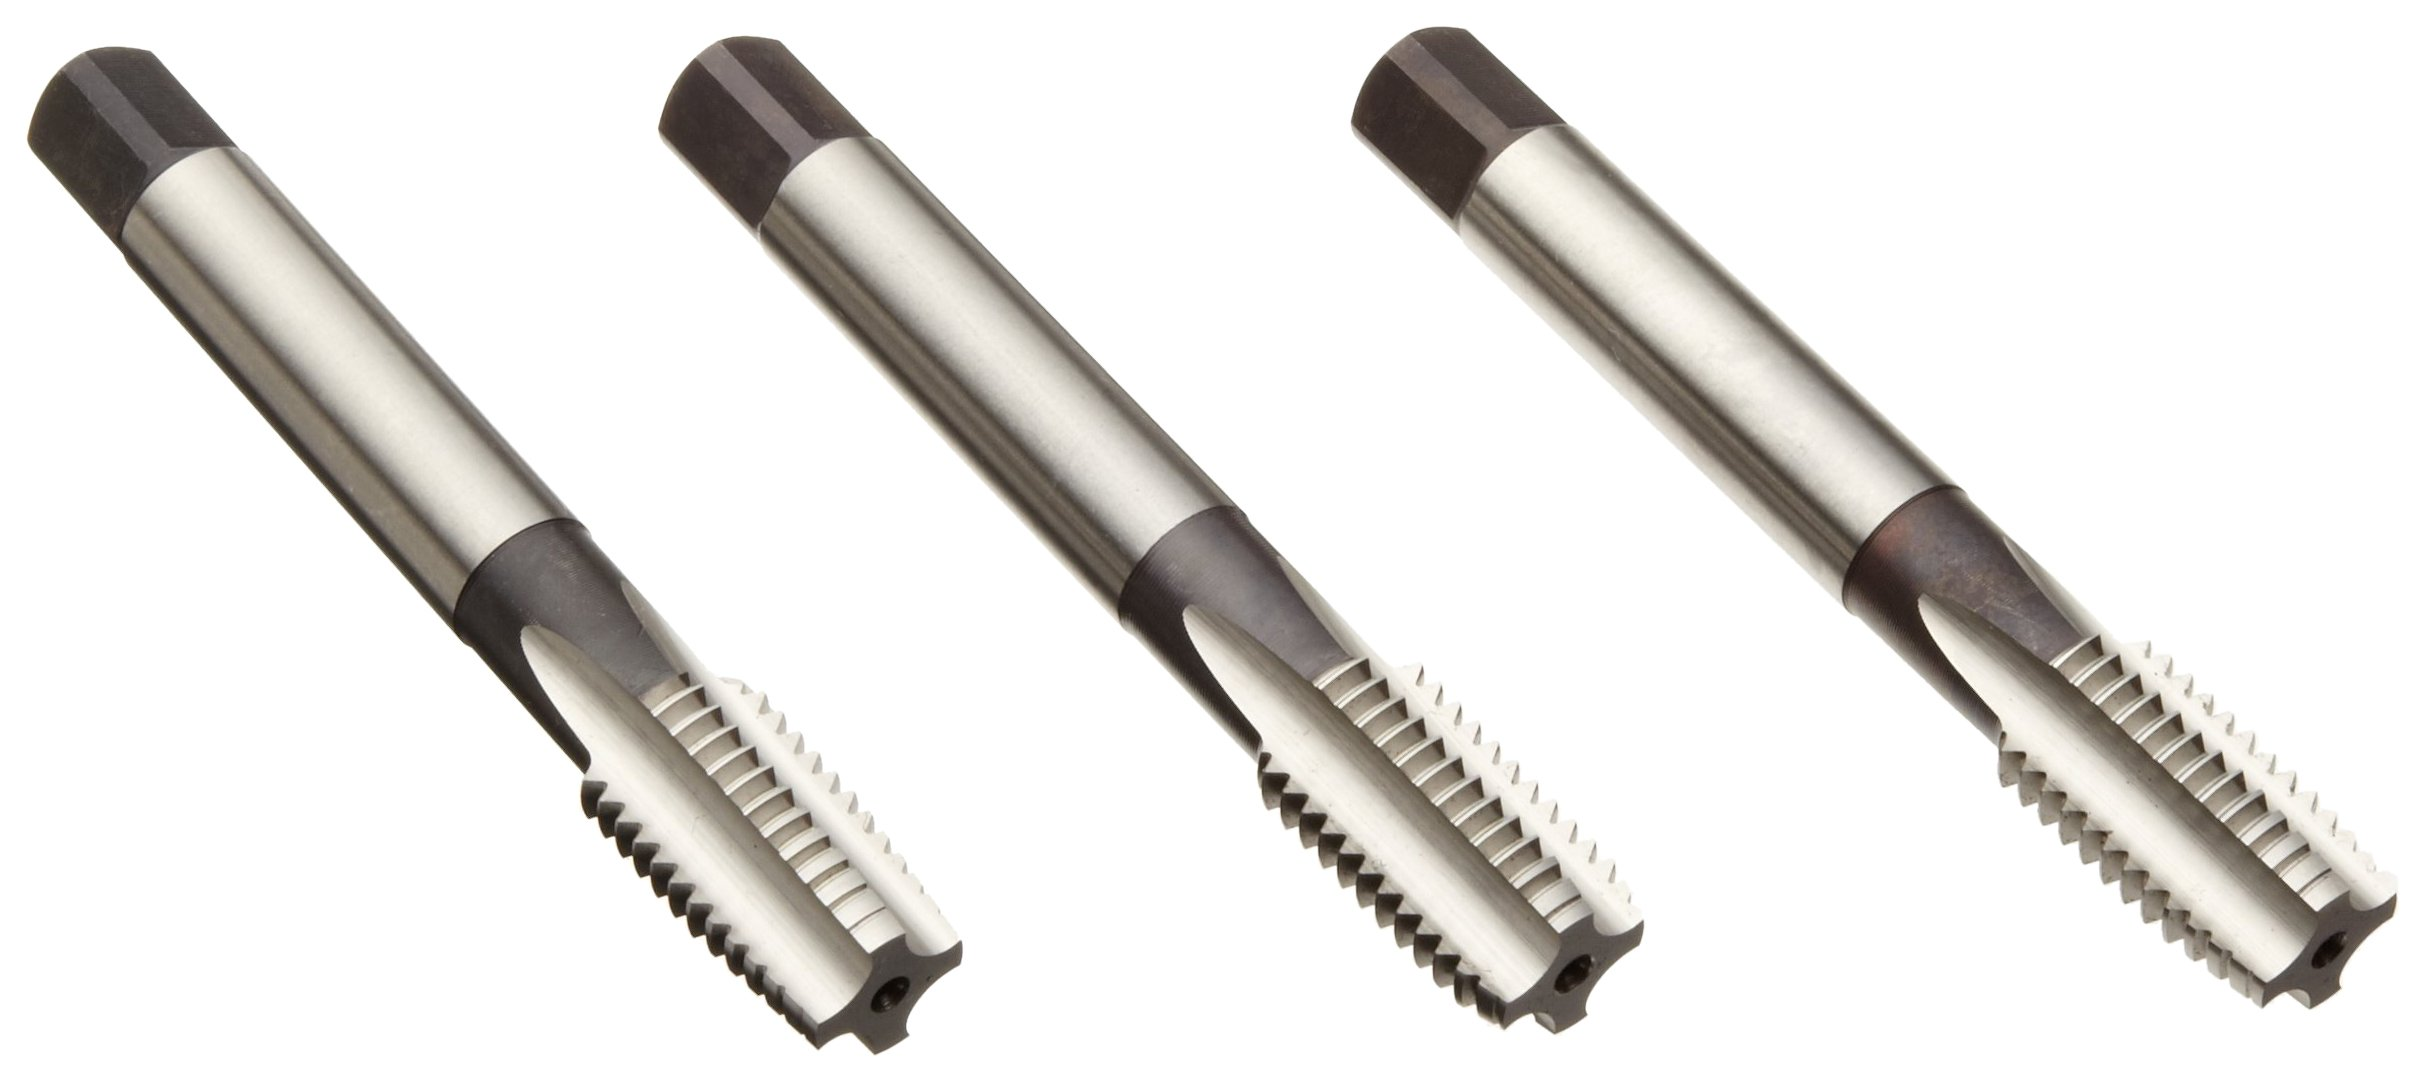 Dormer E500 High-Speed Steel Straight Flute Tap Set, Uncoated (Bright) Finish, Round Shank With Square End, 3-Piece Set (1 Taper, 1 Plug, 1 Bottoming Chamfer), M14-2.00 Thread Size